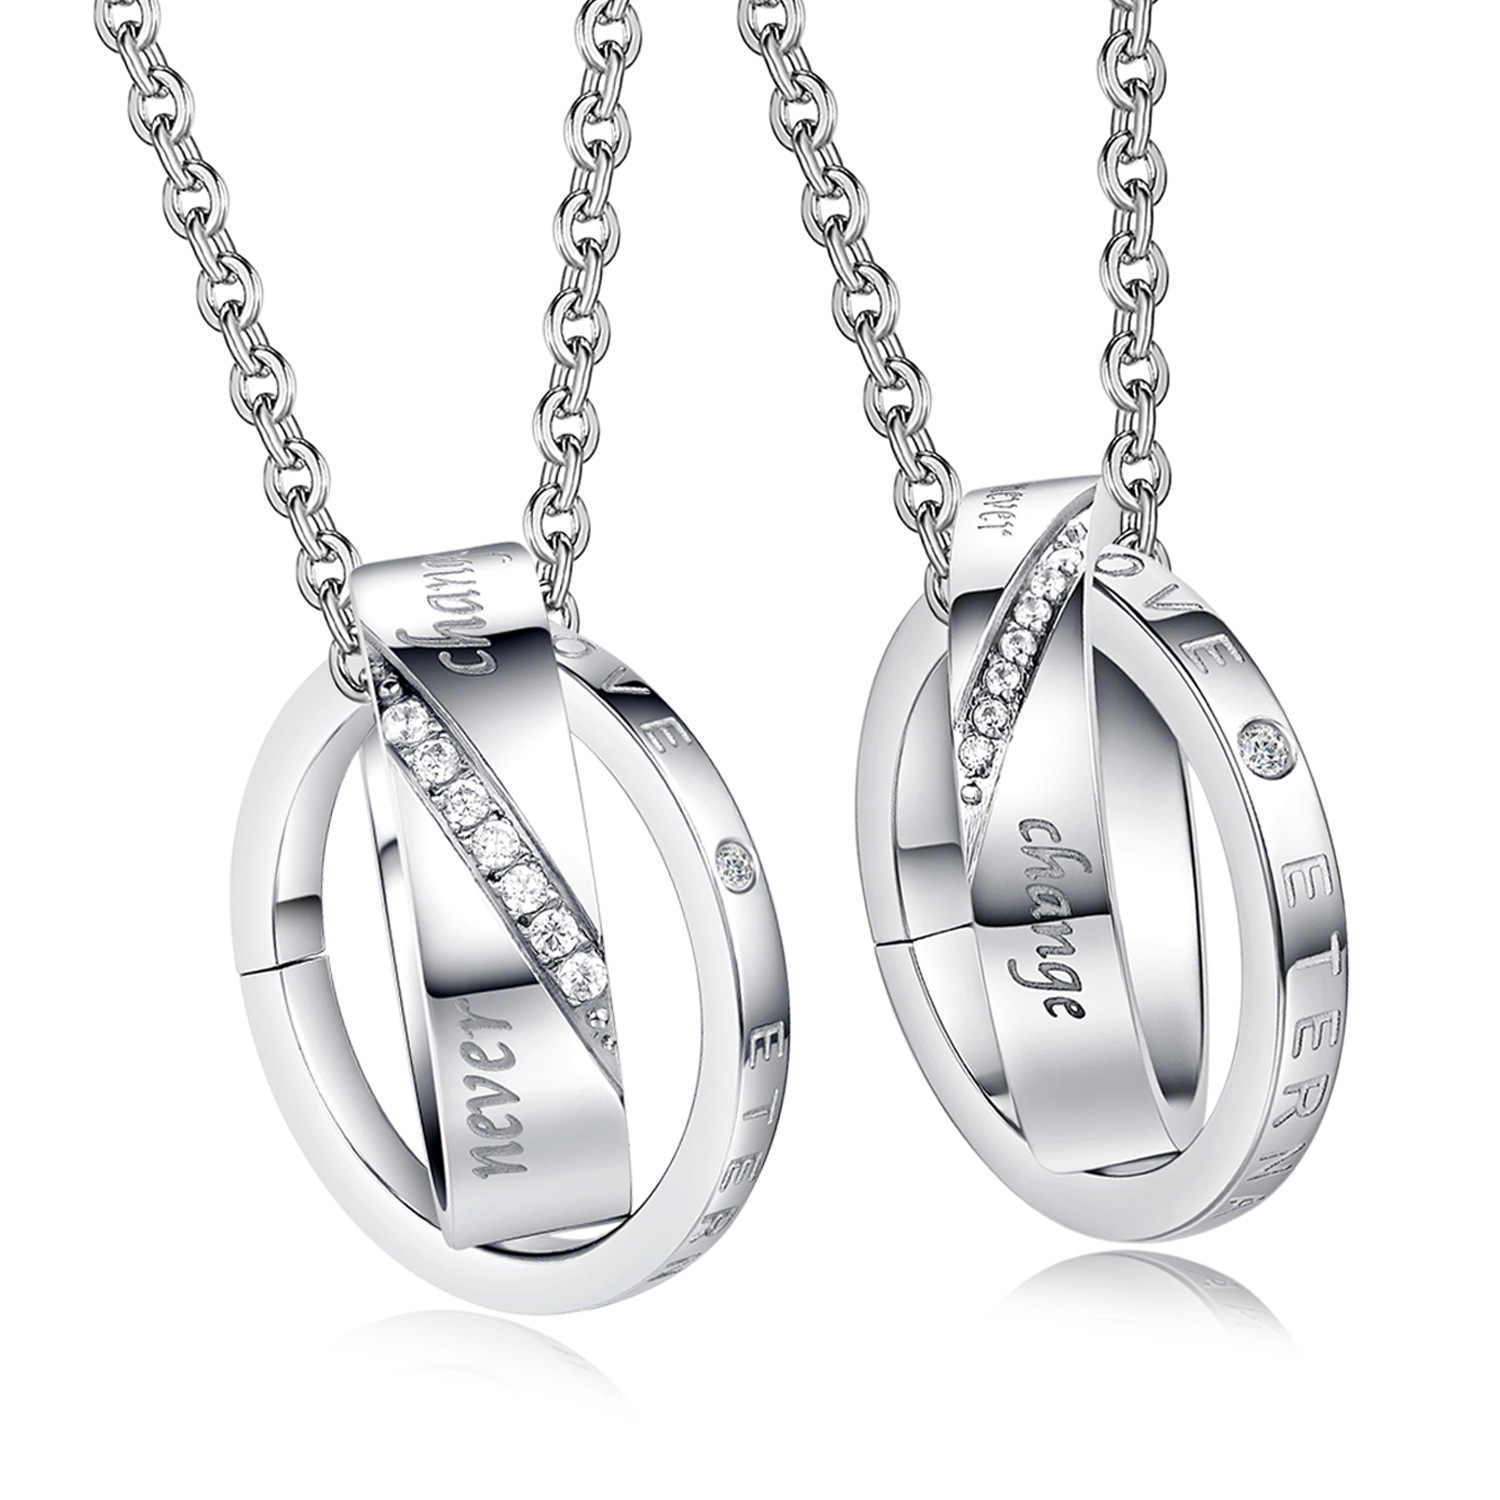 Couple Necklace Stainless Steel Crystal Double Circle Pendant Necklaces For Lovers Women Men